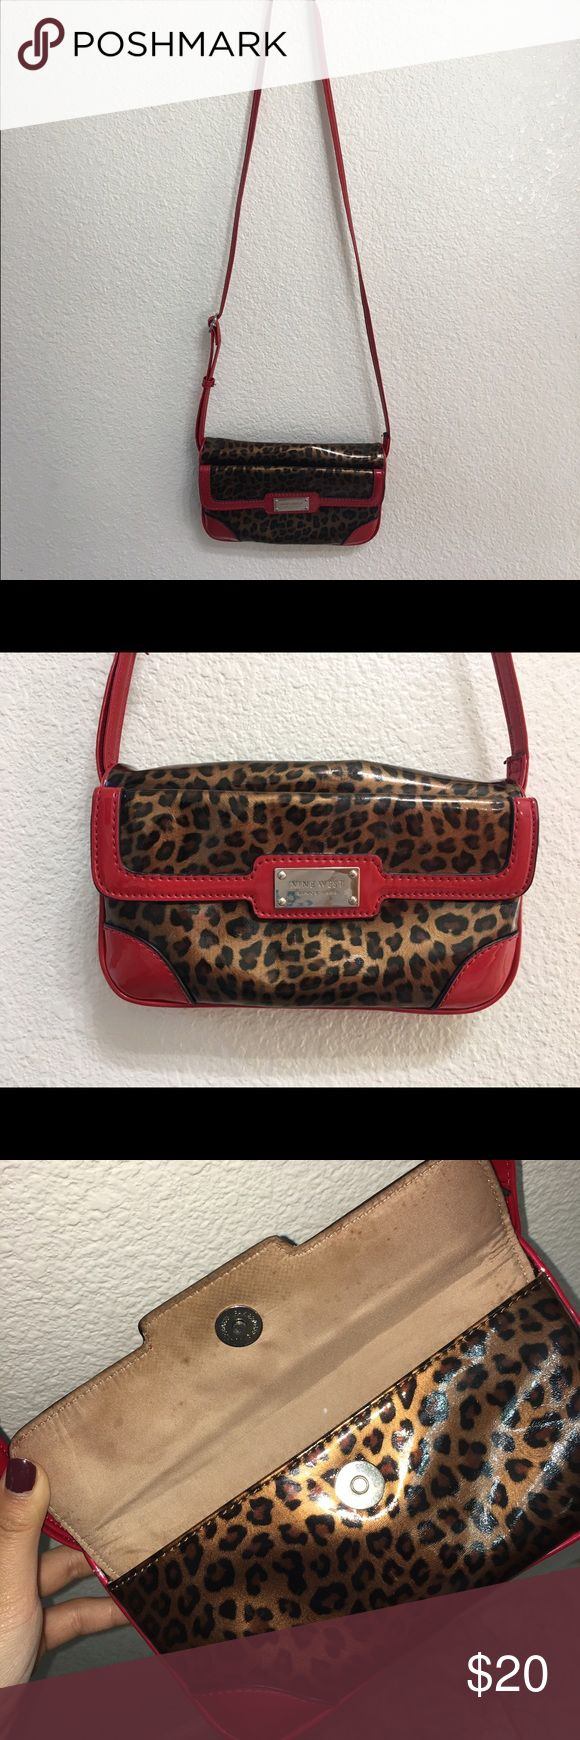 Over-the-shoulder Nine West Purse Cheetah print with red embroidery; used about 4 times when going out! Nine West Bags Shoulder Bags